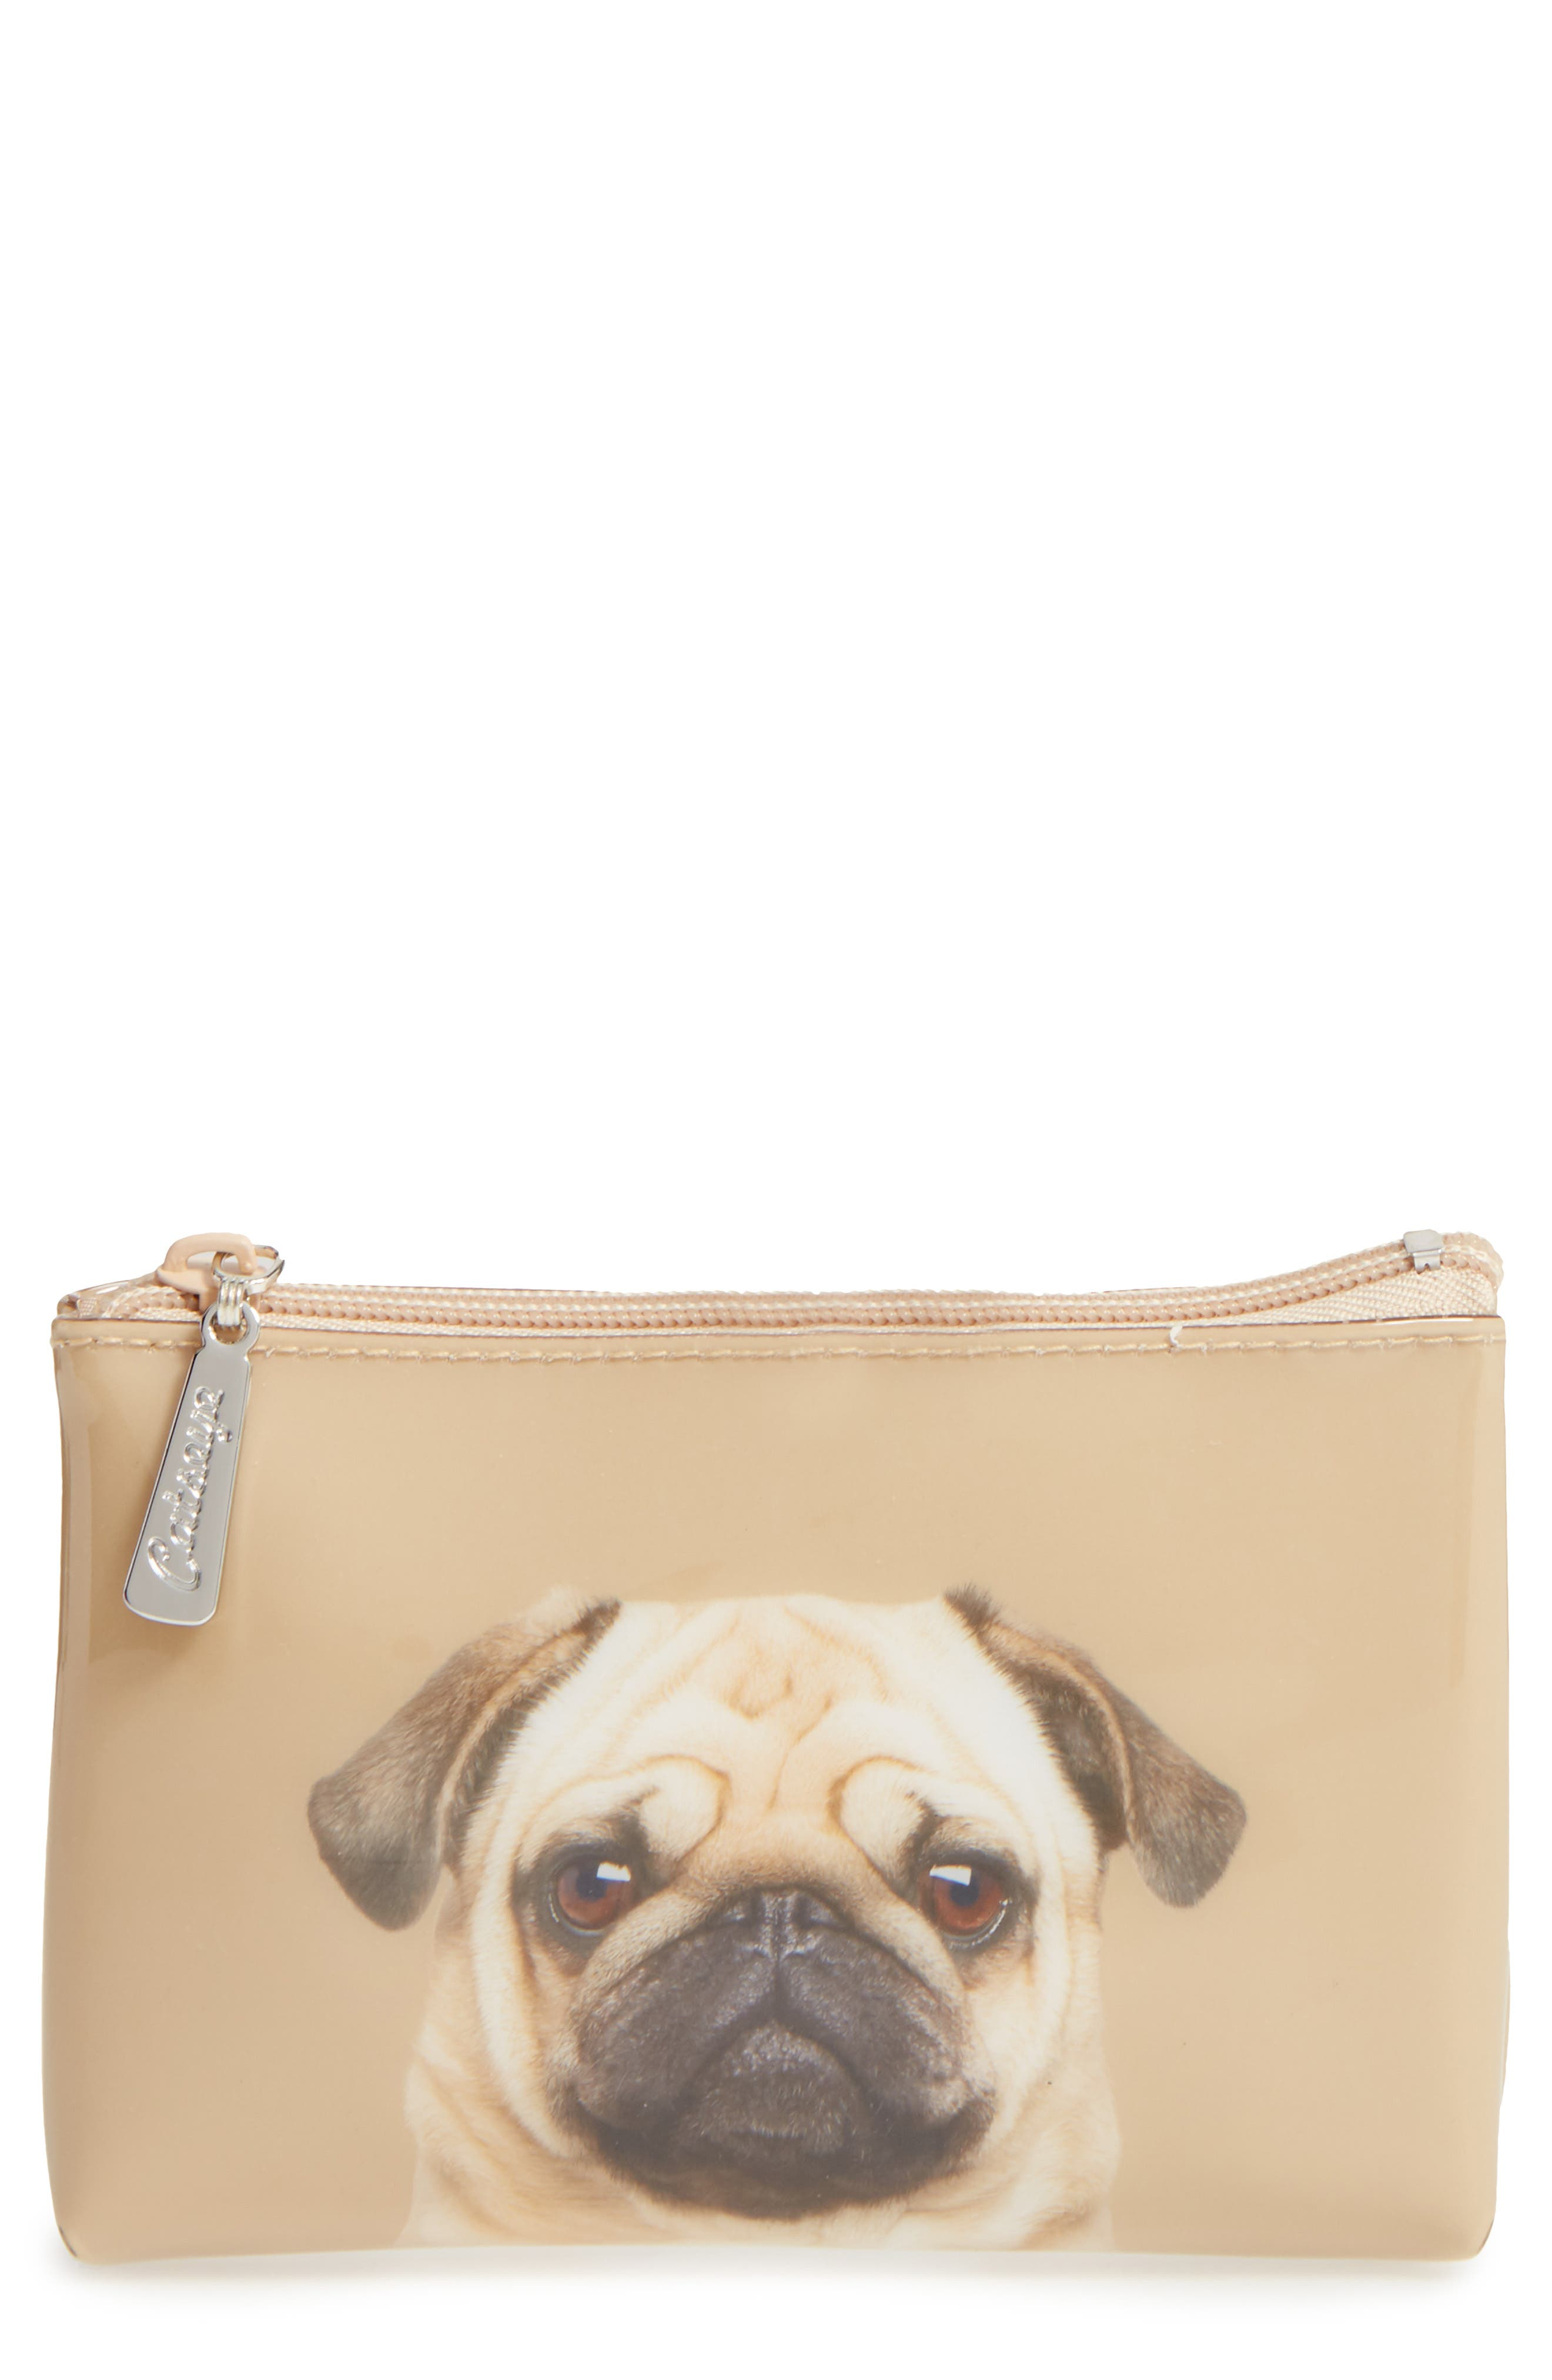 Caramel Pug Small Zip Pouch,                             Main thumbnail 1, color,                             200